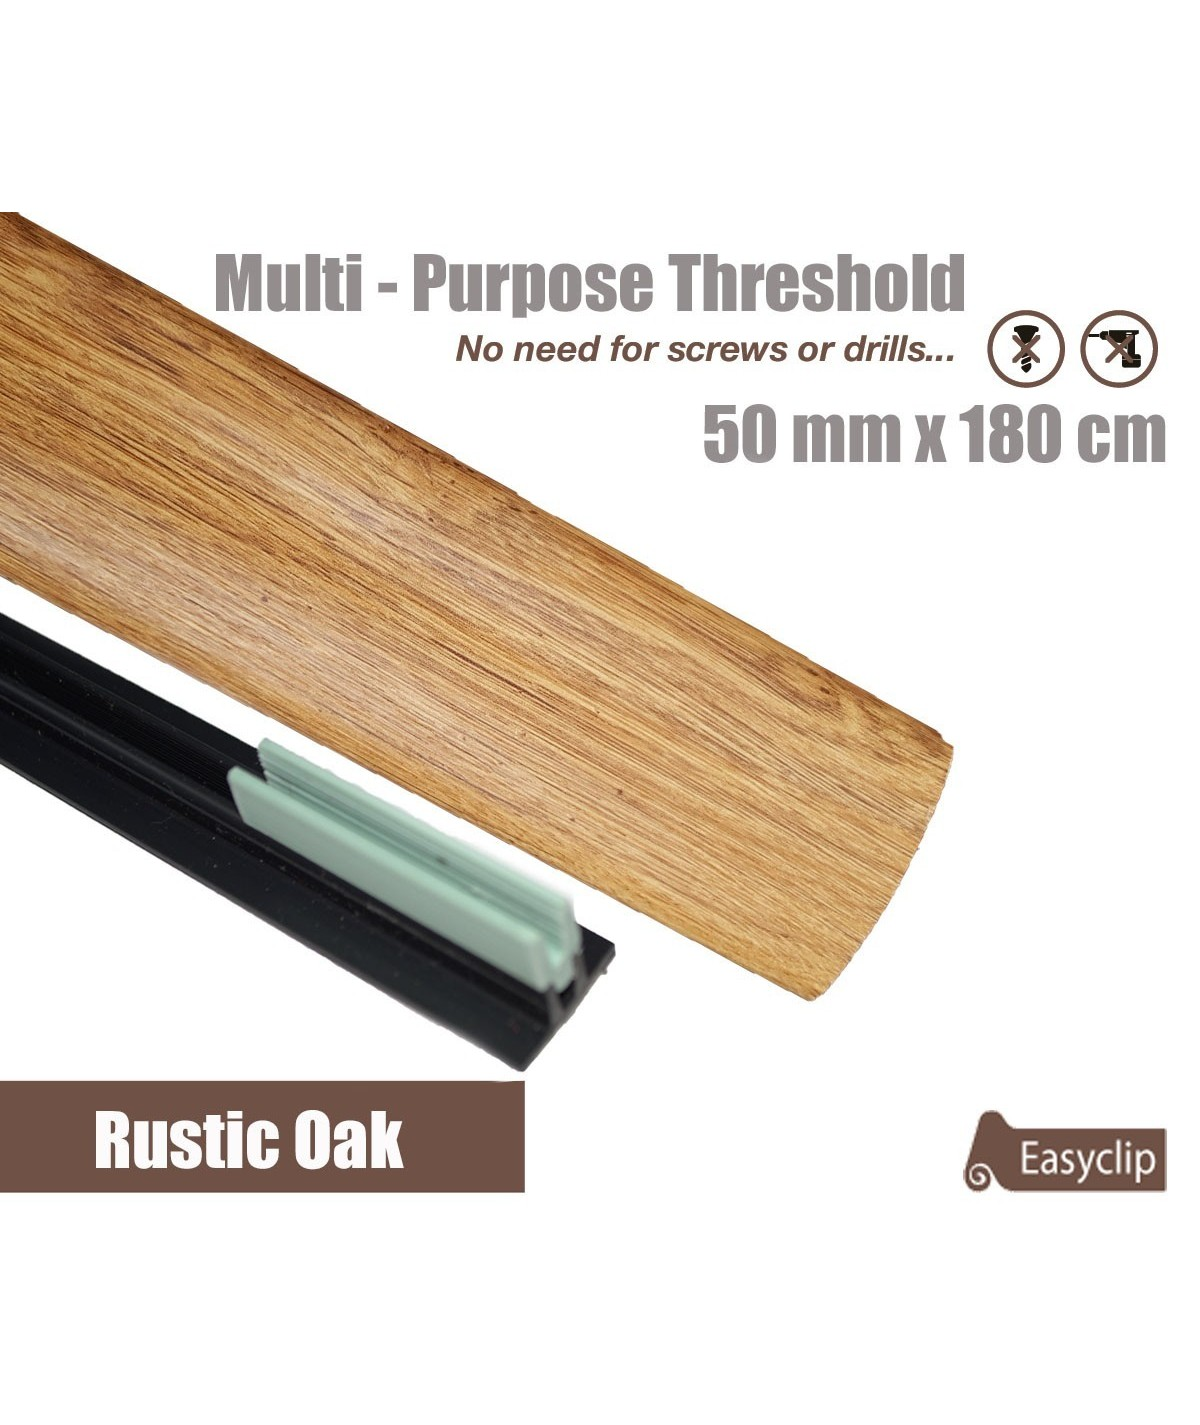 Rustic Oak Laminated Transition Threshold Strip  50mm x180cm Multi-Height/Pivots